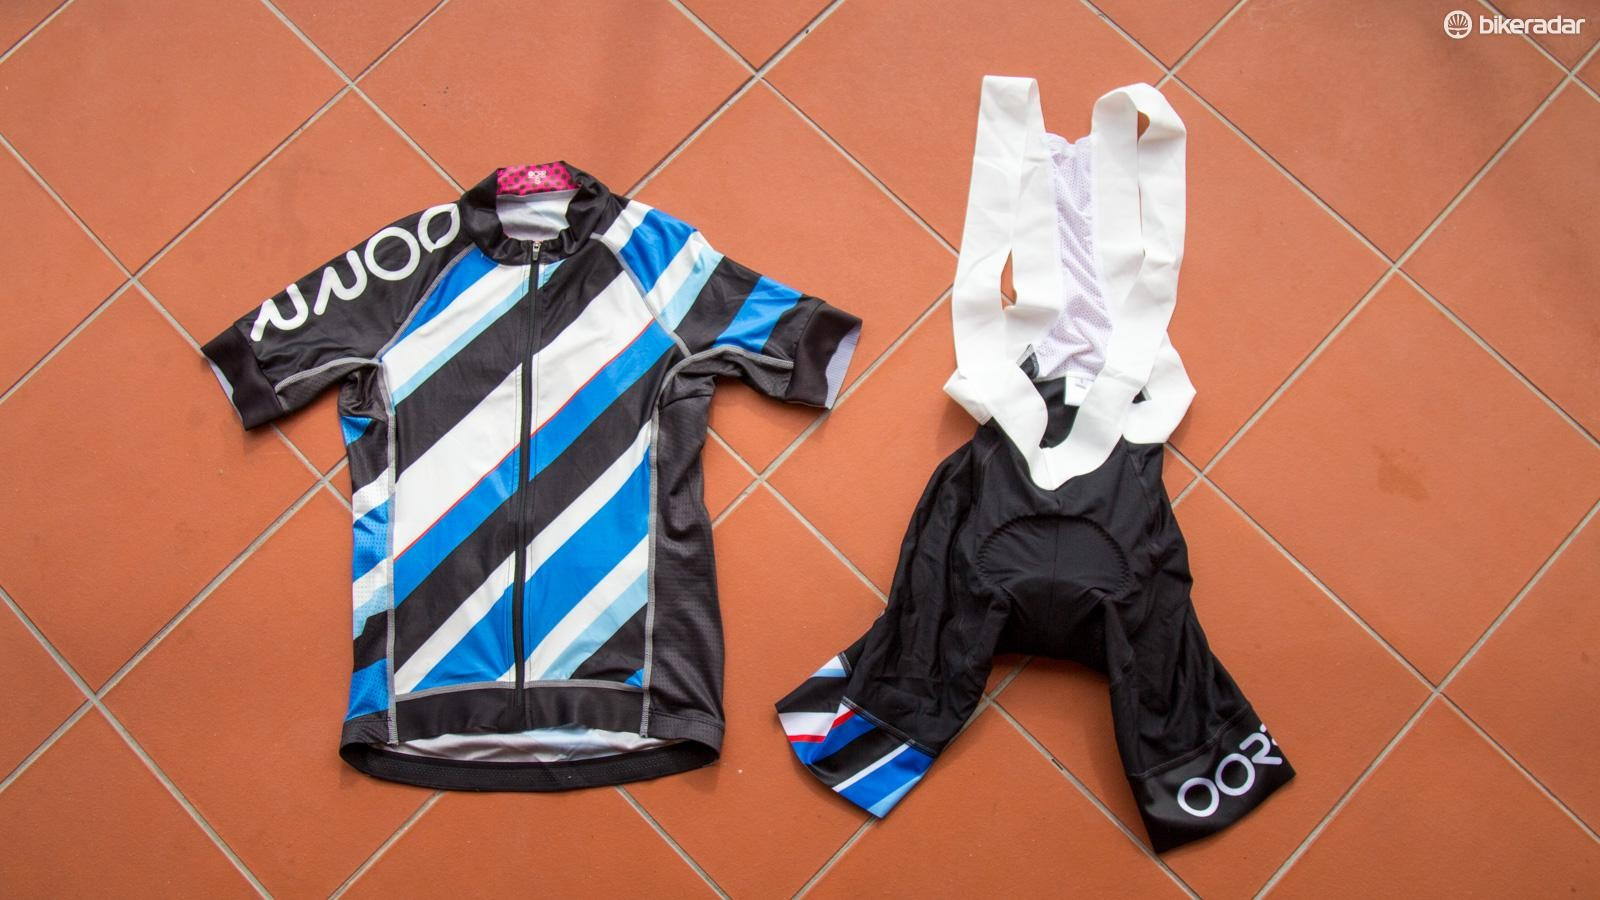 The new Pro Kit from OORR is looking to show what's possible when it comes to recycled kit